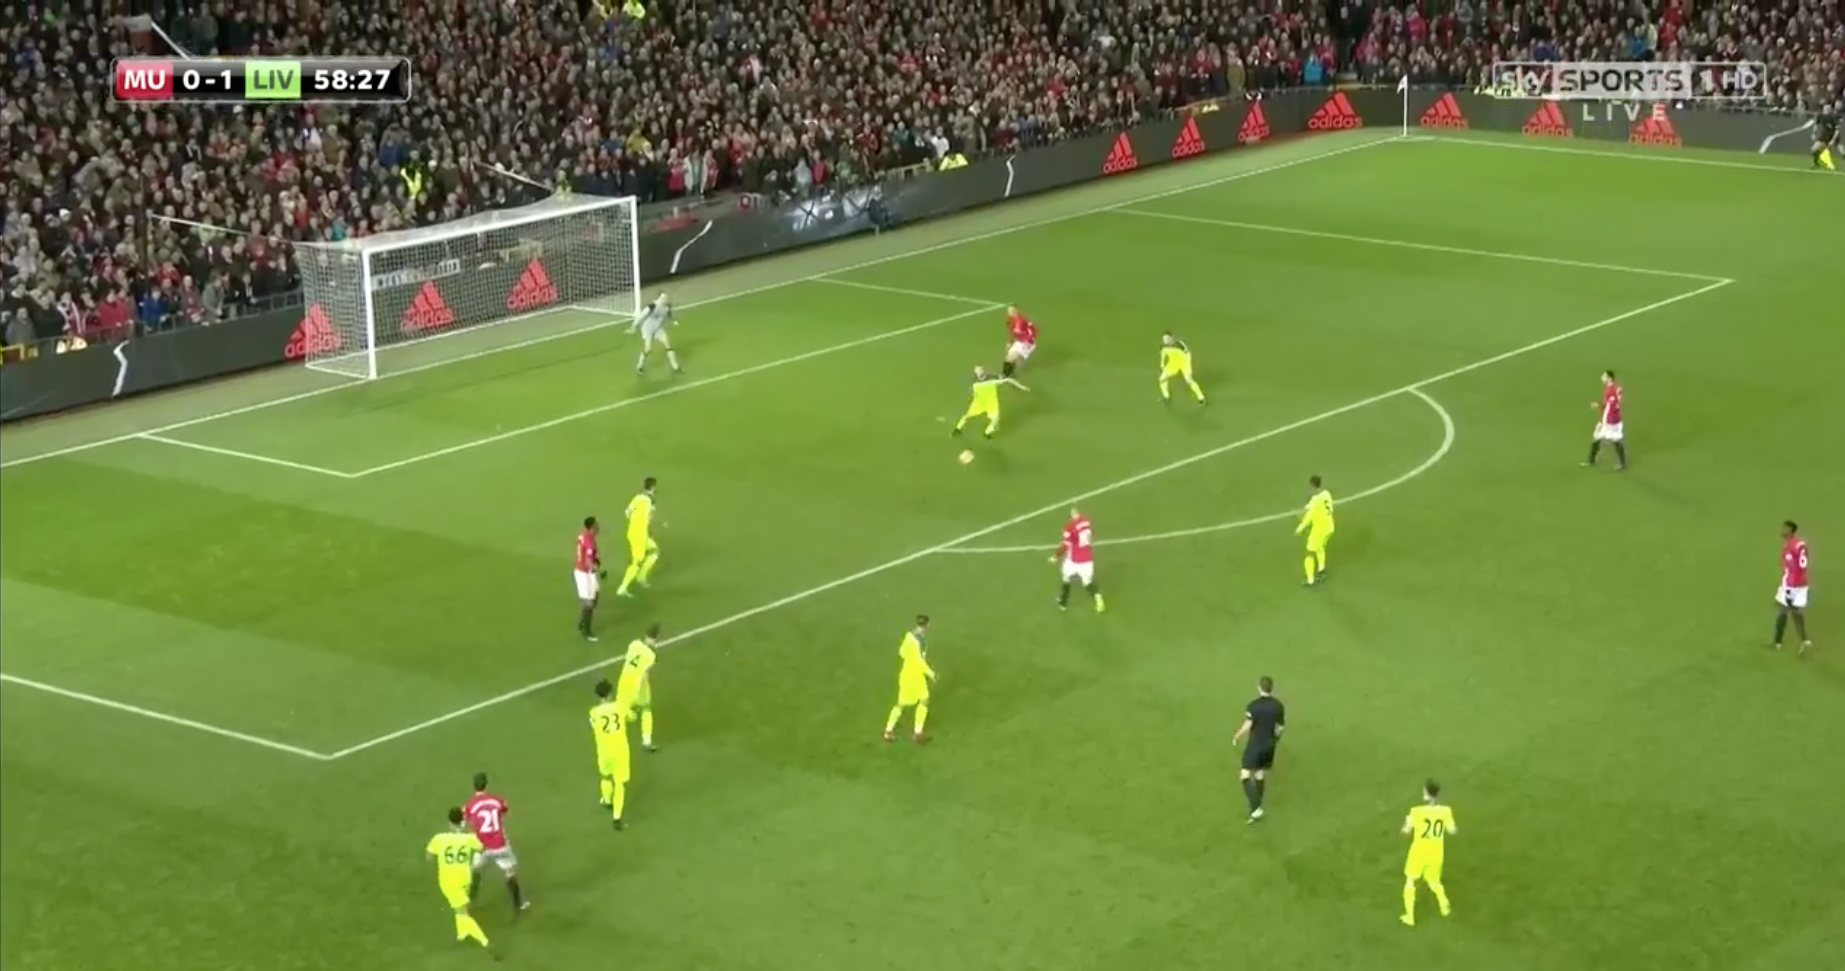 Liverpool clear a cross delivered by Ander Herrera